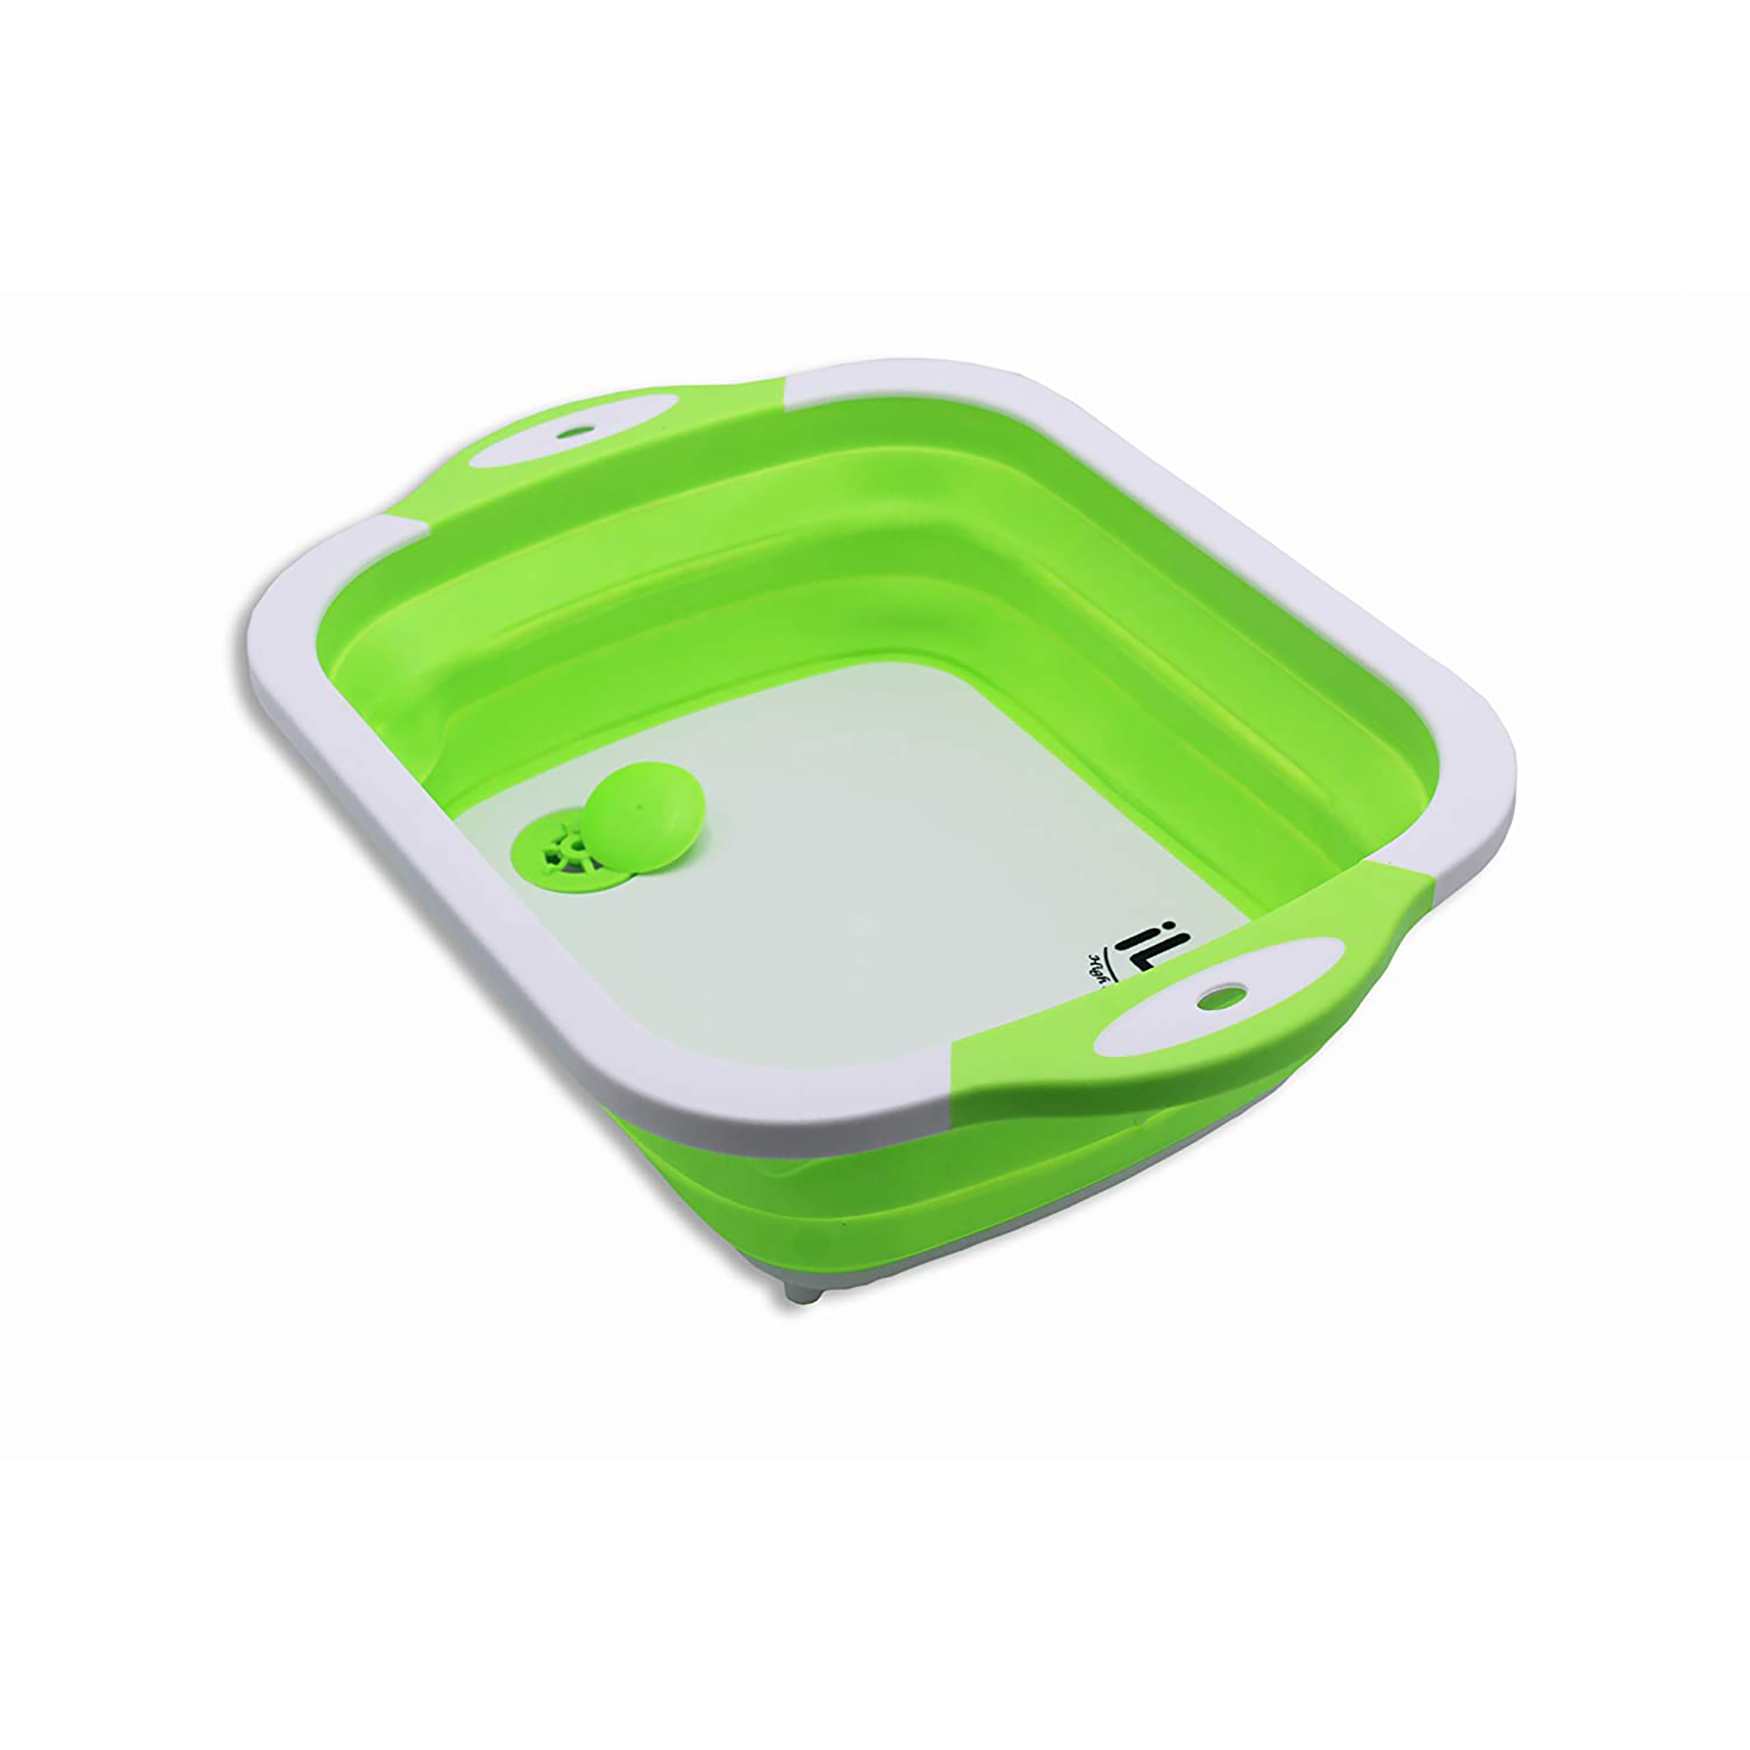 iLife   iLife Collapsible Cutting Board with Colander, 4-in-1 Multi-function Foldable Kitchen Plastic Silicone Dish Tub Drainers, Sink Storage Washing Draining Basket for Fruits/Vegetables